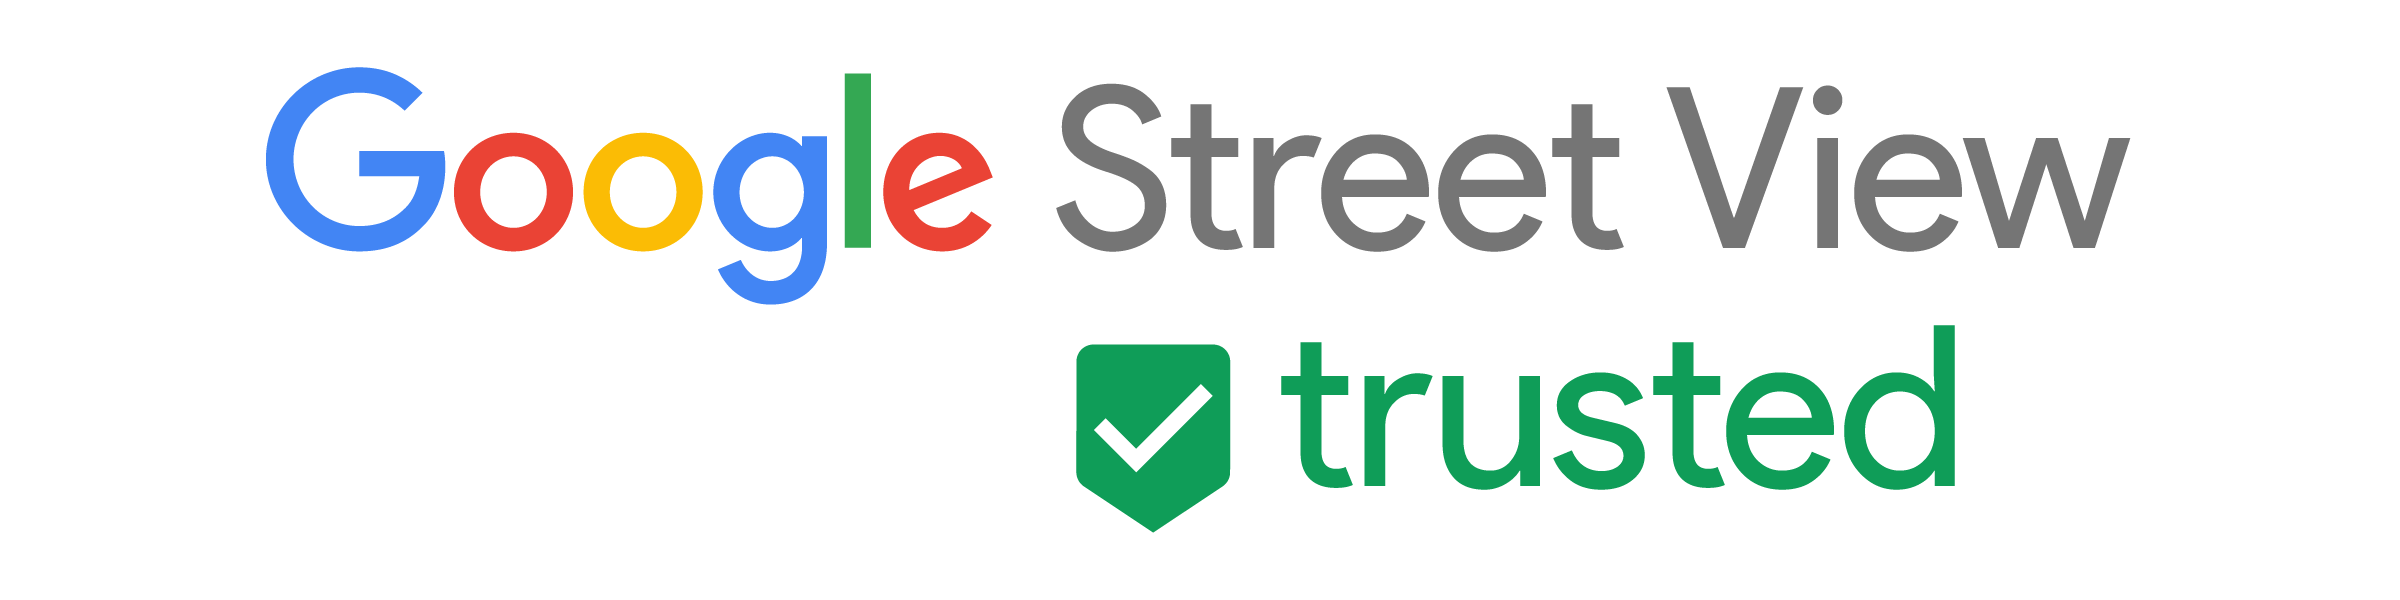 SVtrusted-JP